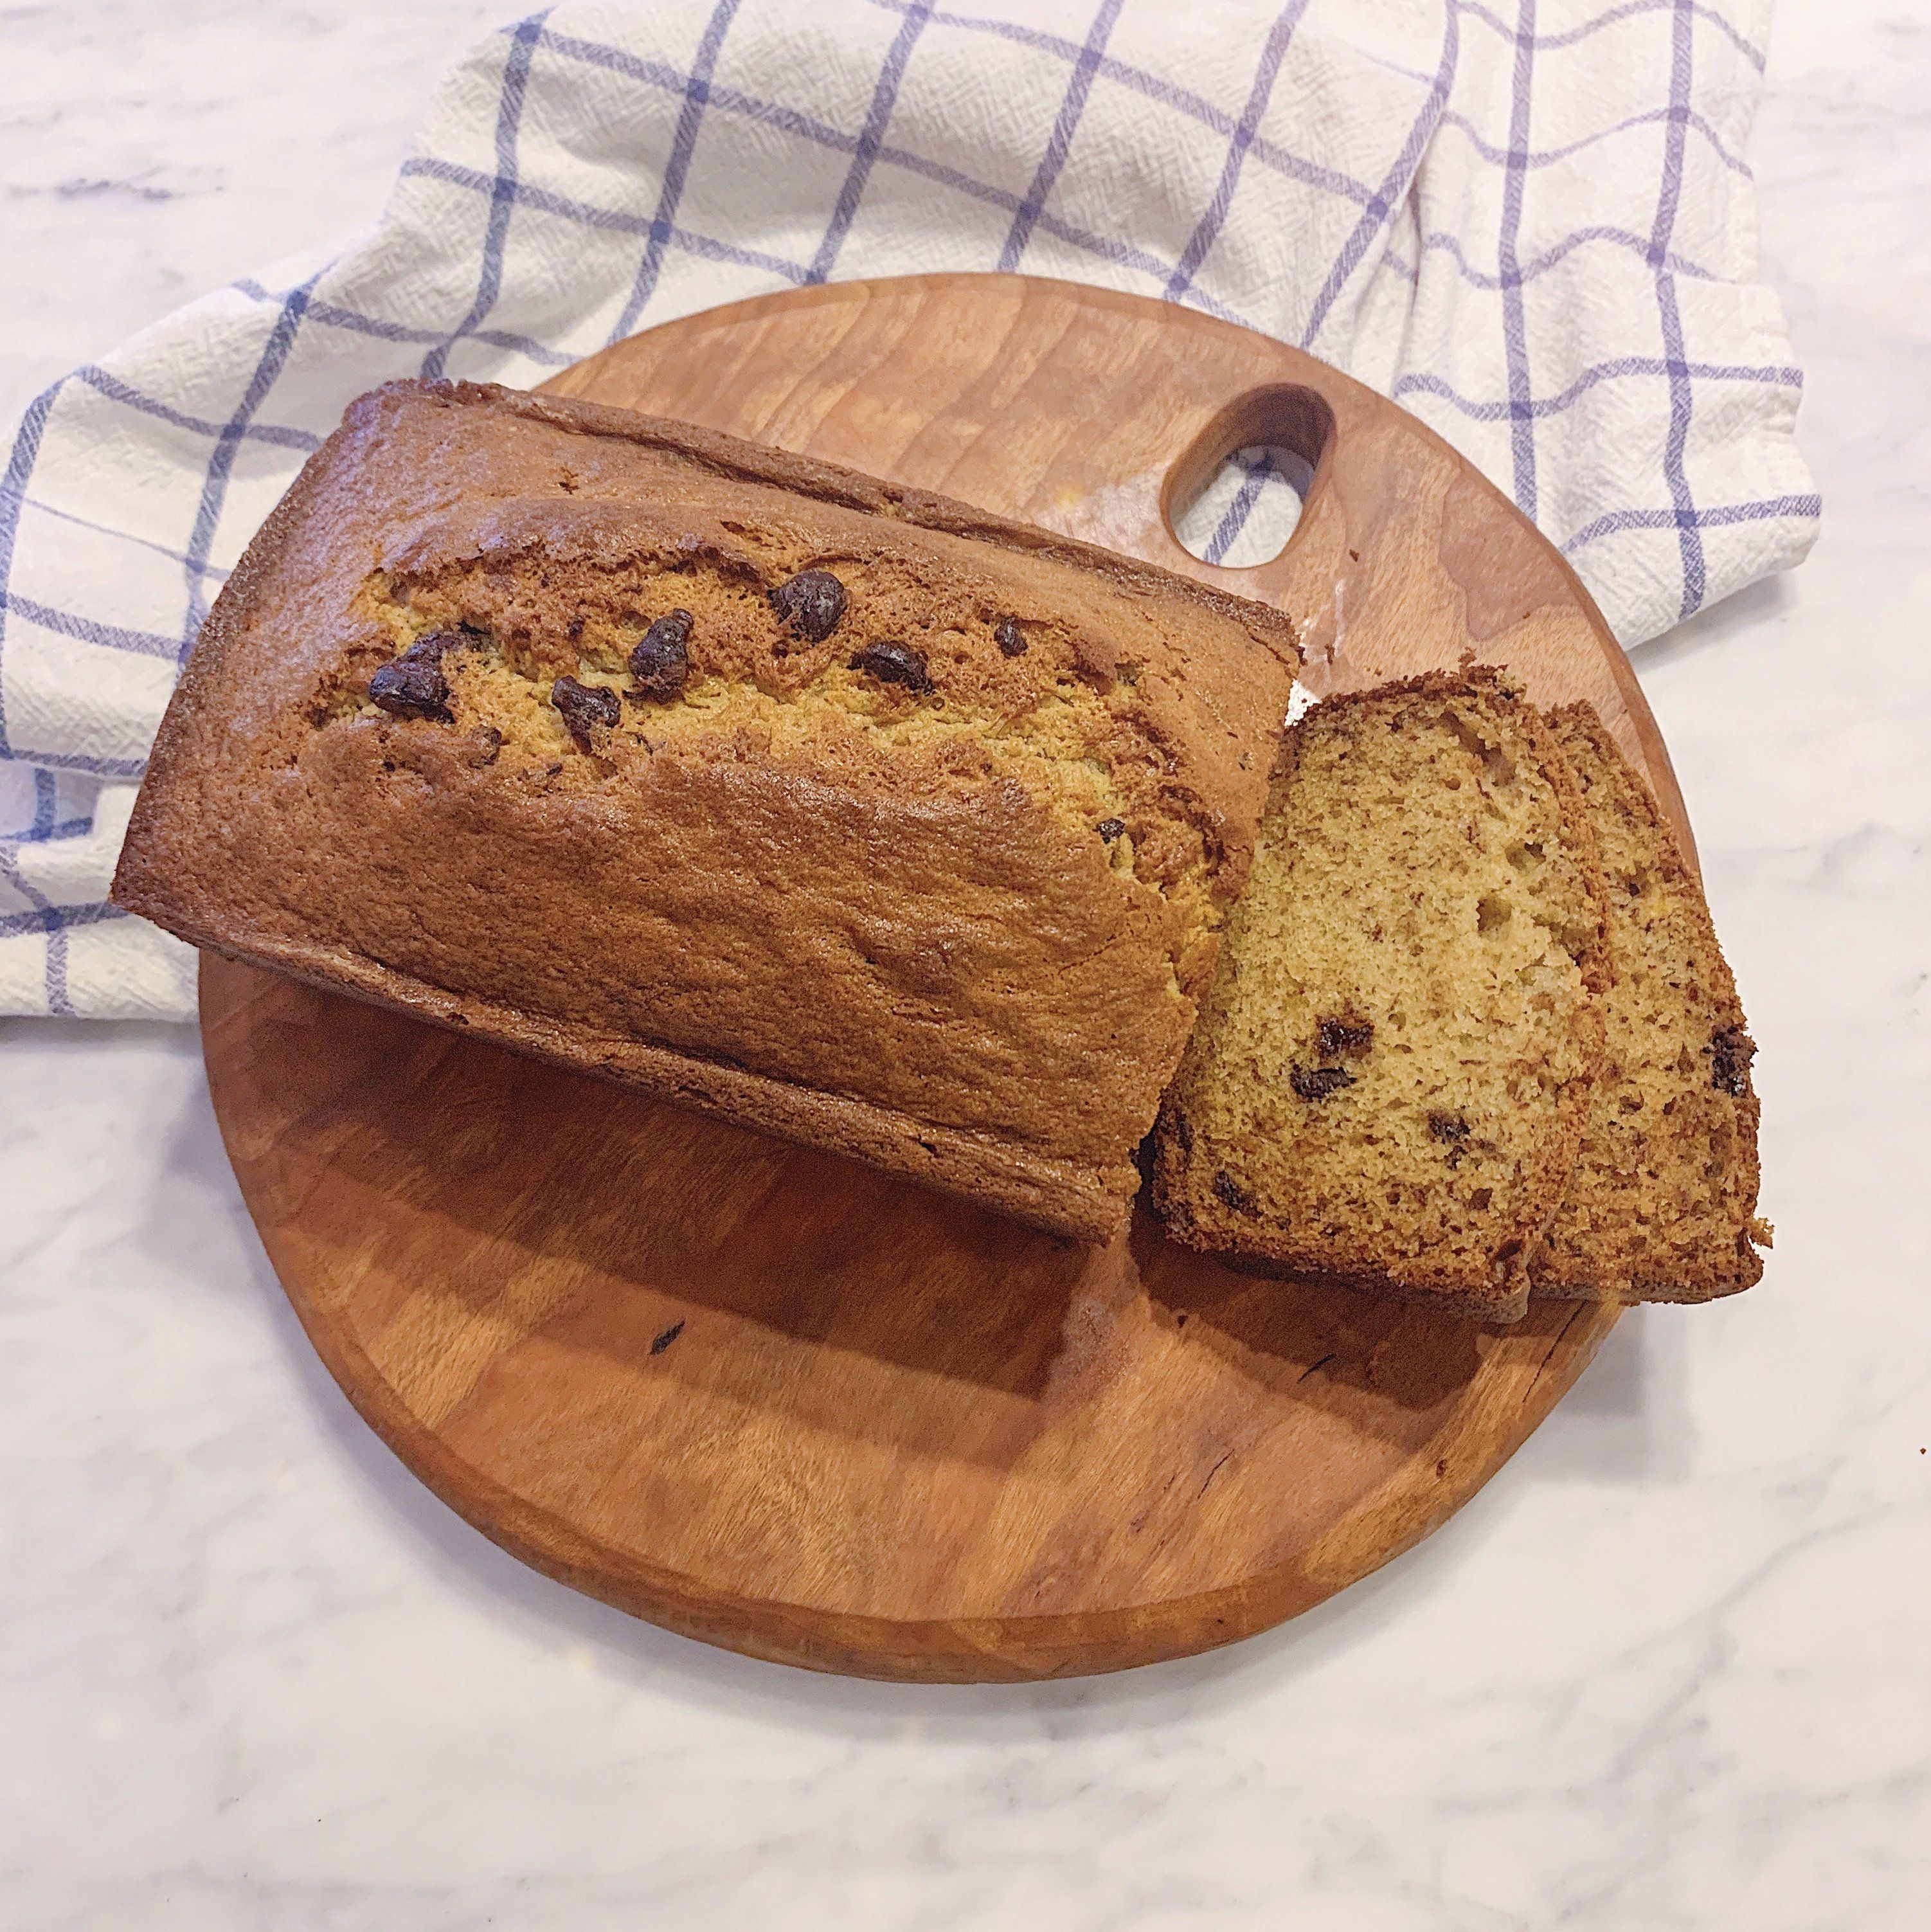 Grandma Julie's easy, delicious Banana Bread Recipe with chocolate chips